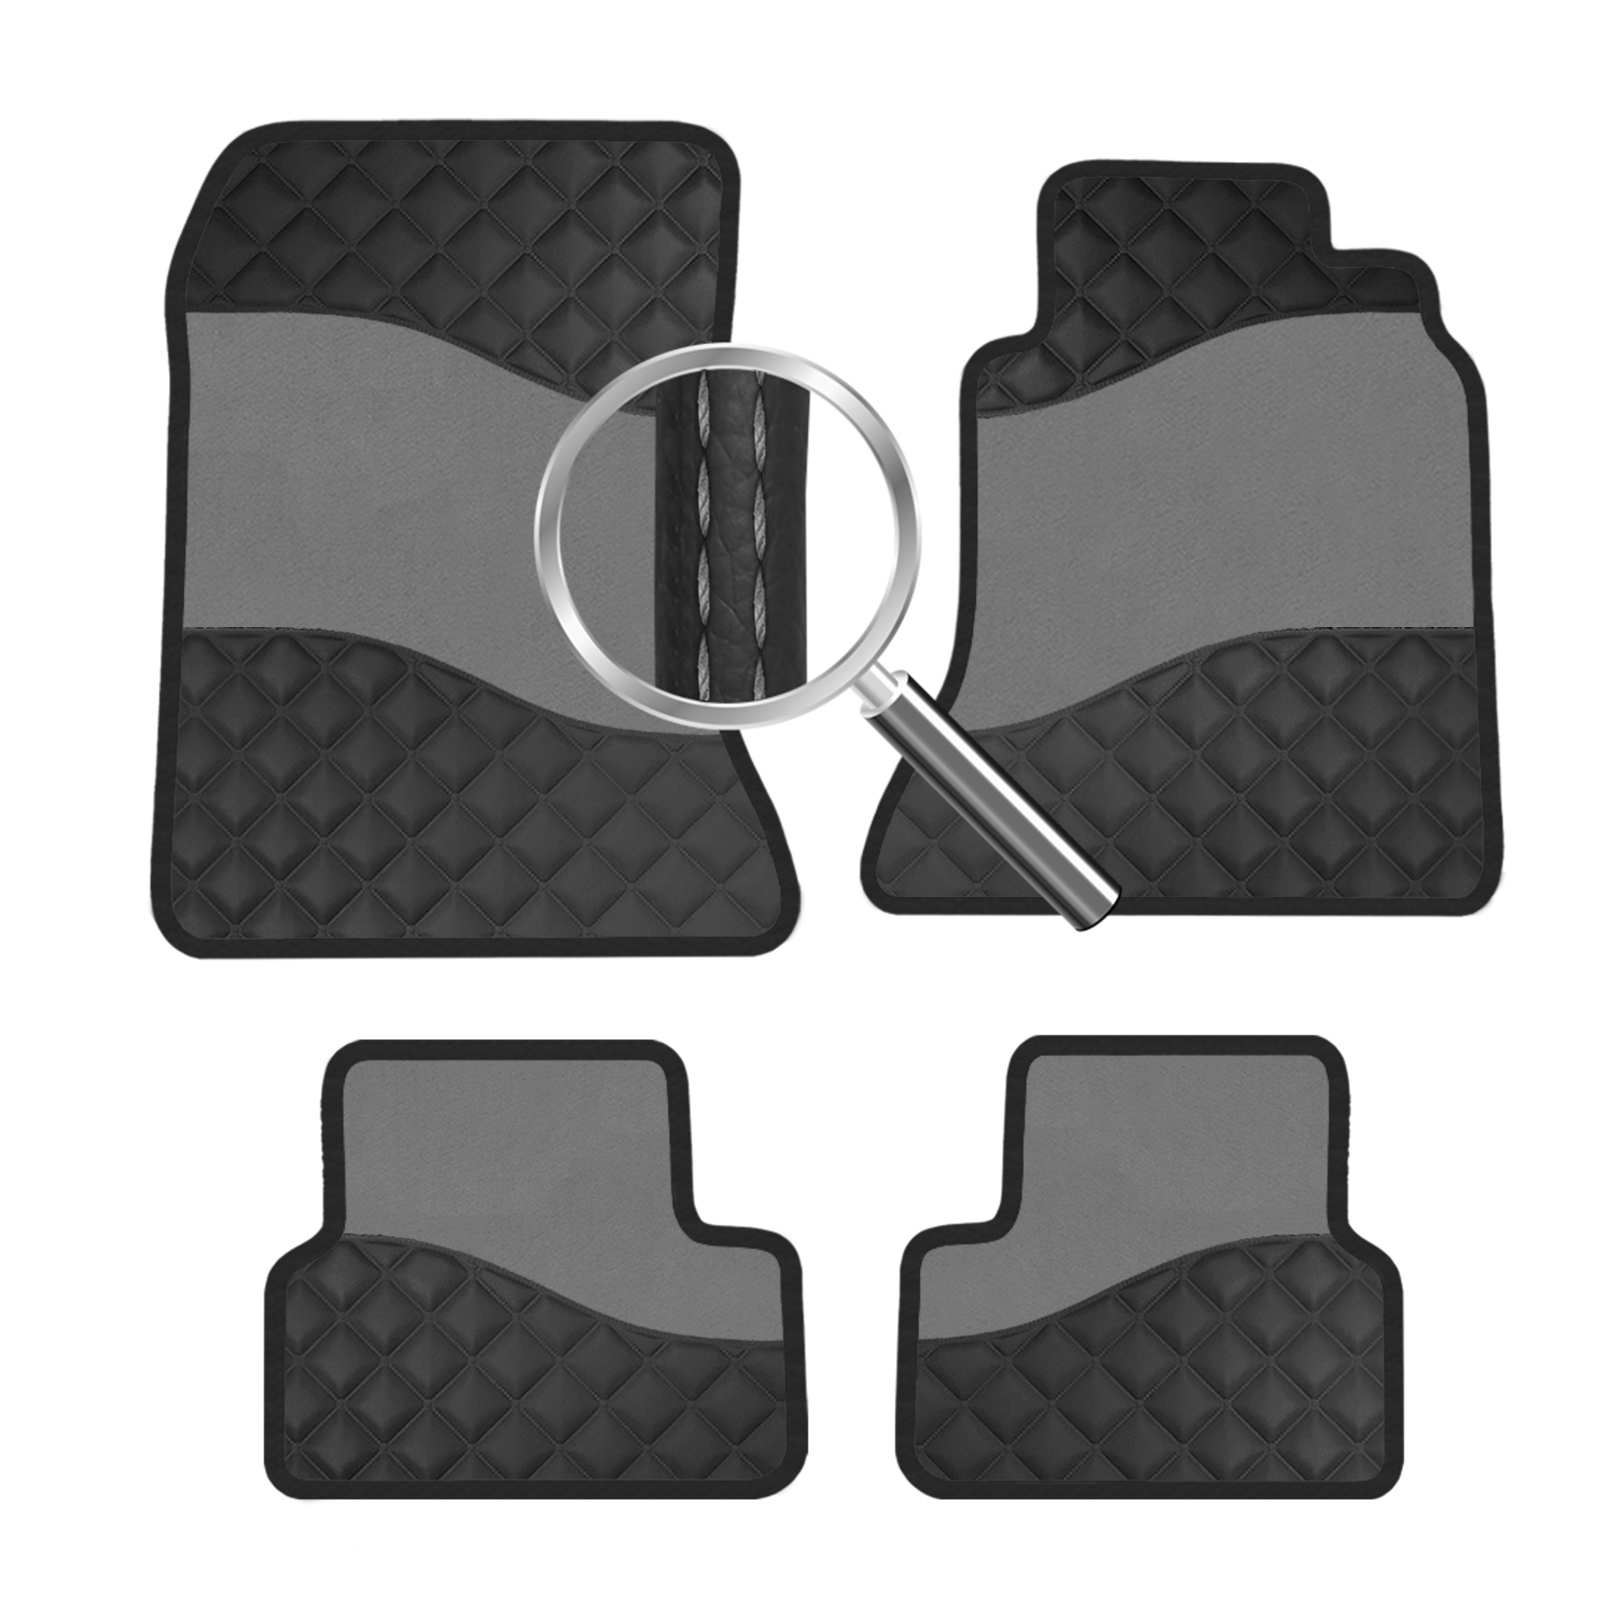 amazon floor set car mats cab carpet of access toyota dp genuine for automotive trd tacoma pro com